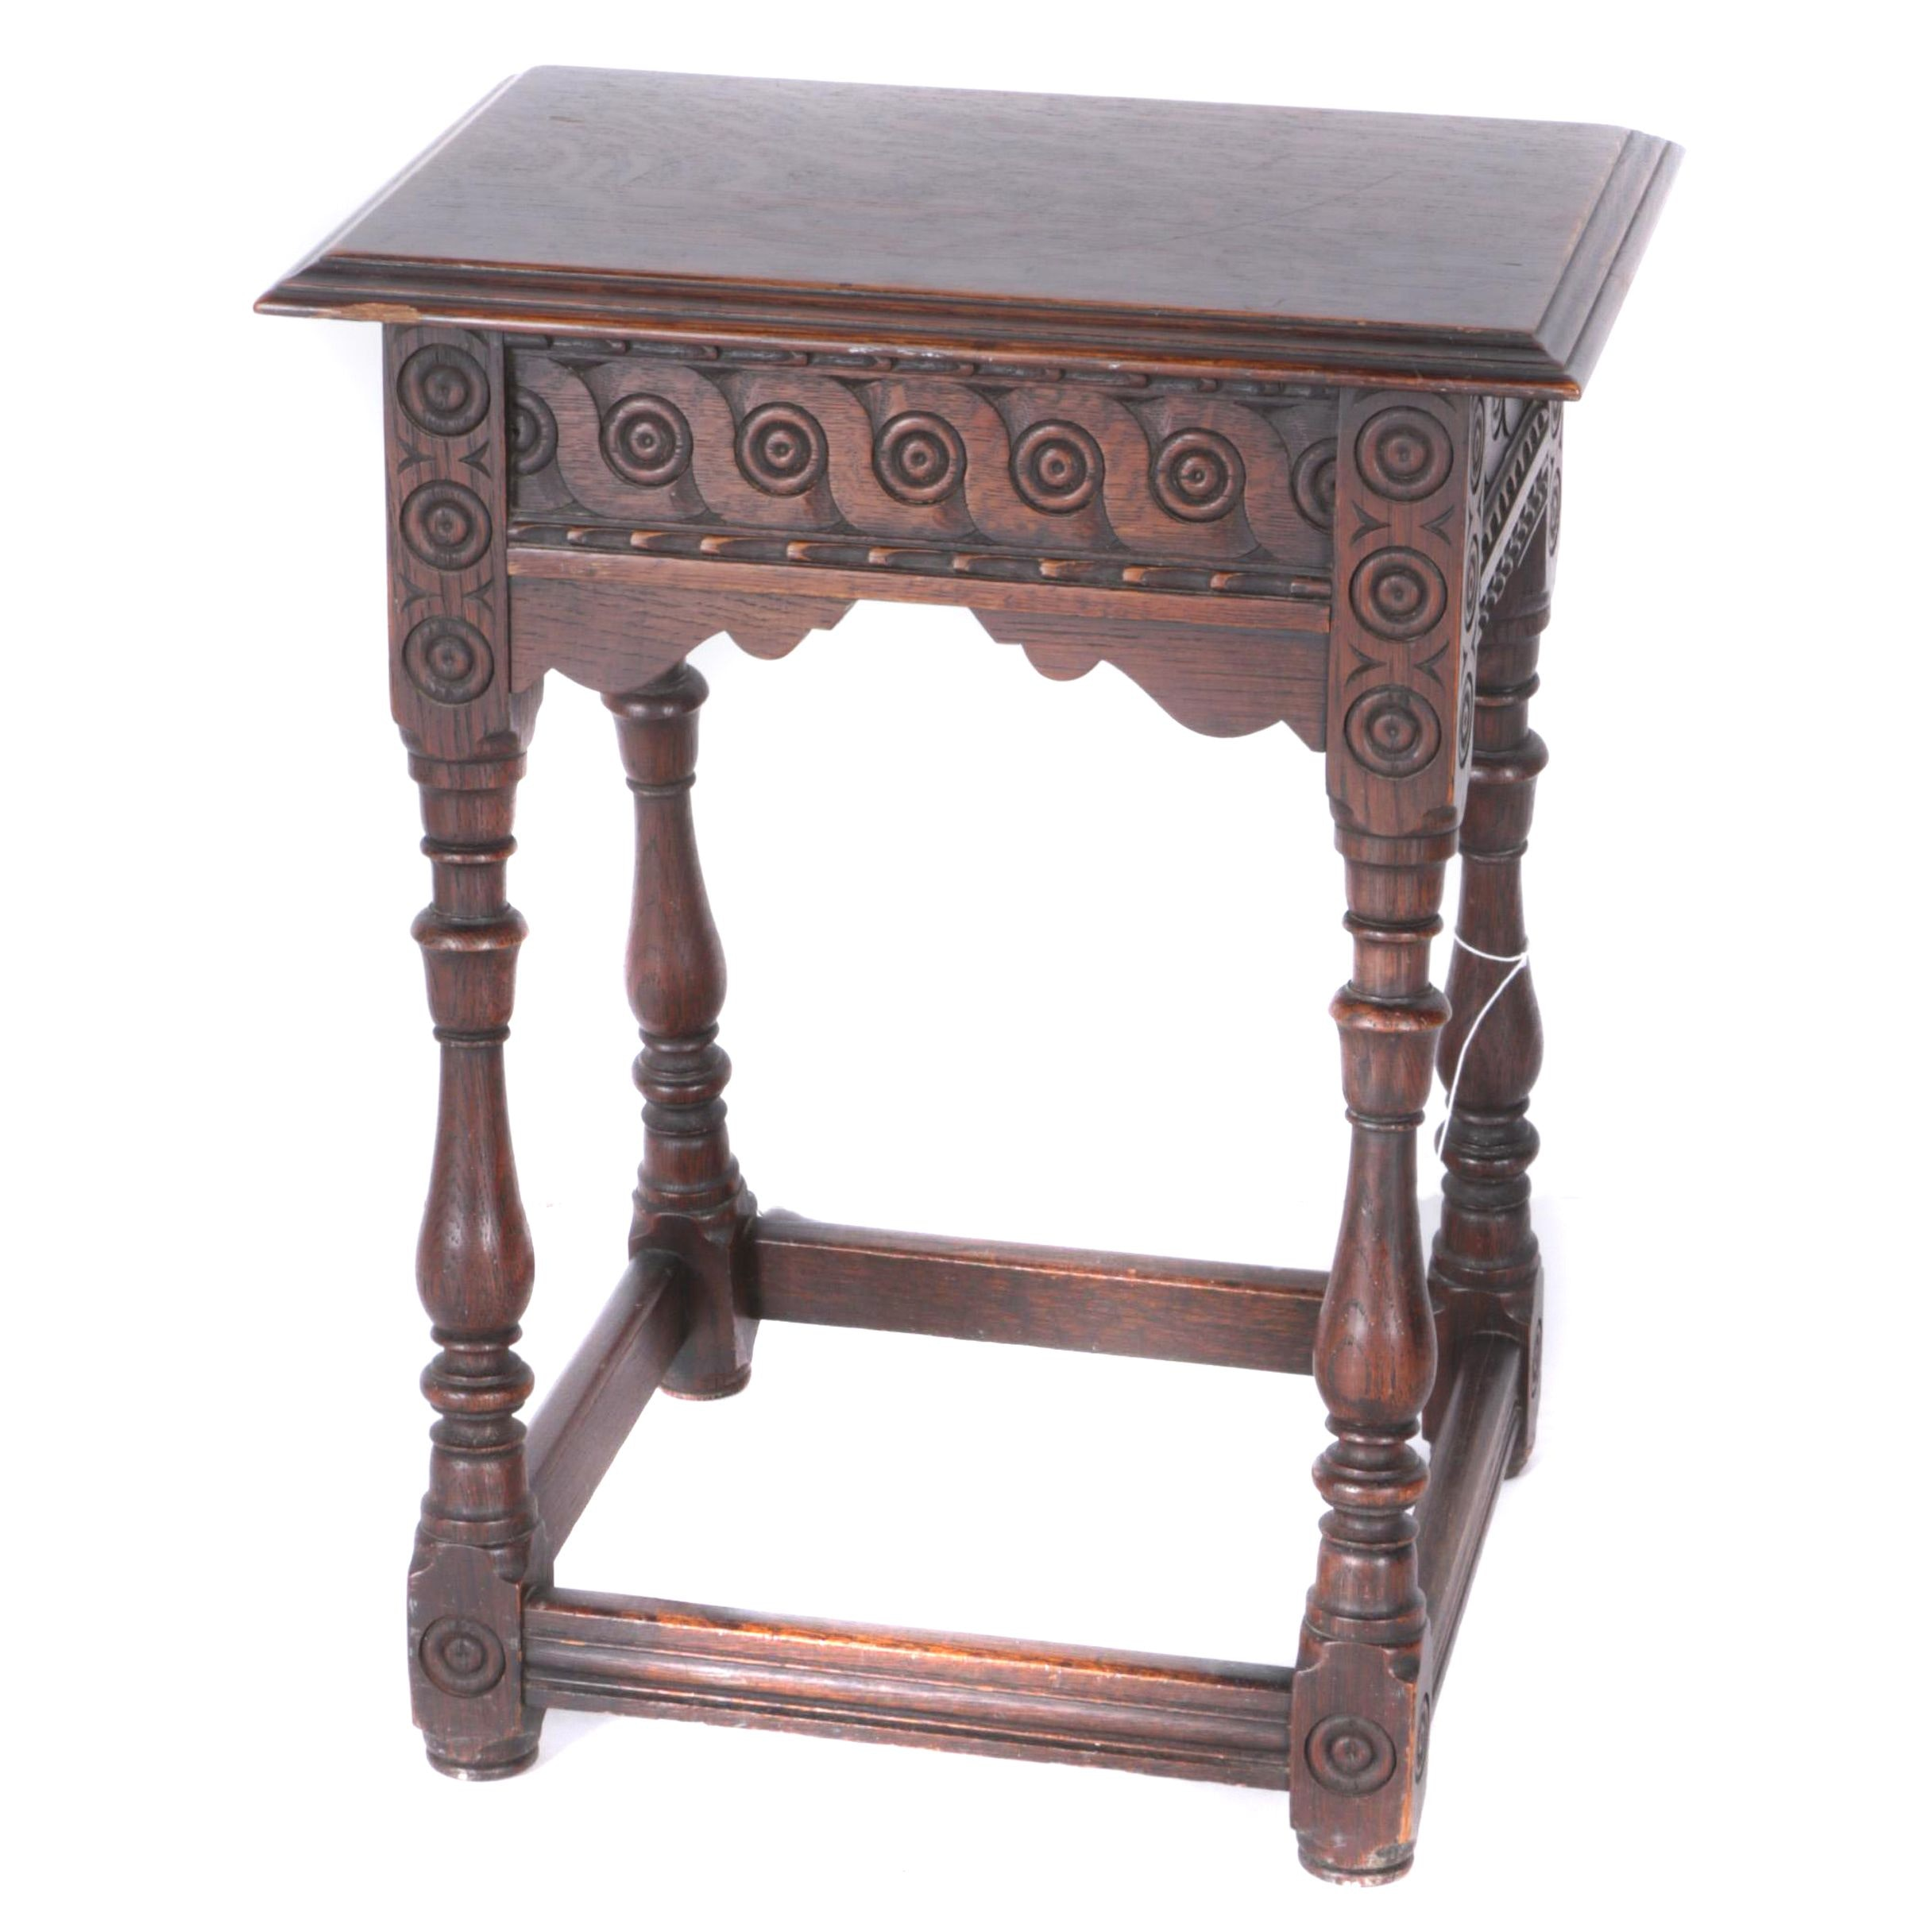 Vintage Jacobean Revival Style Carved Oak Side Table